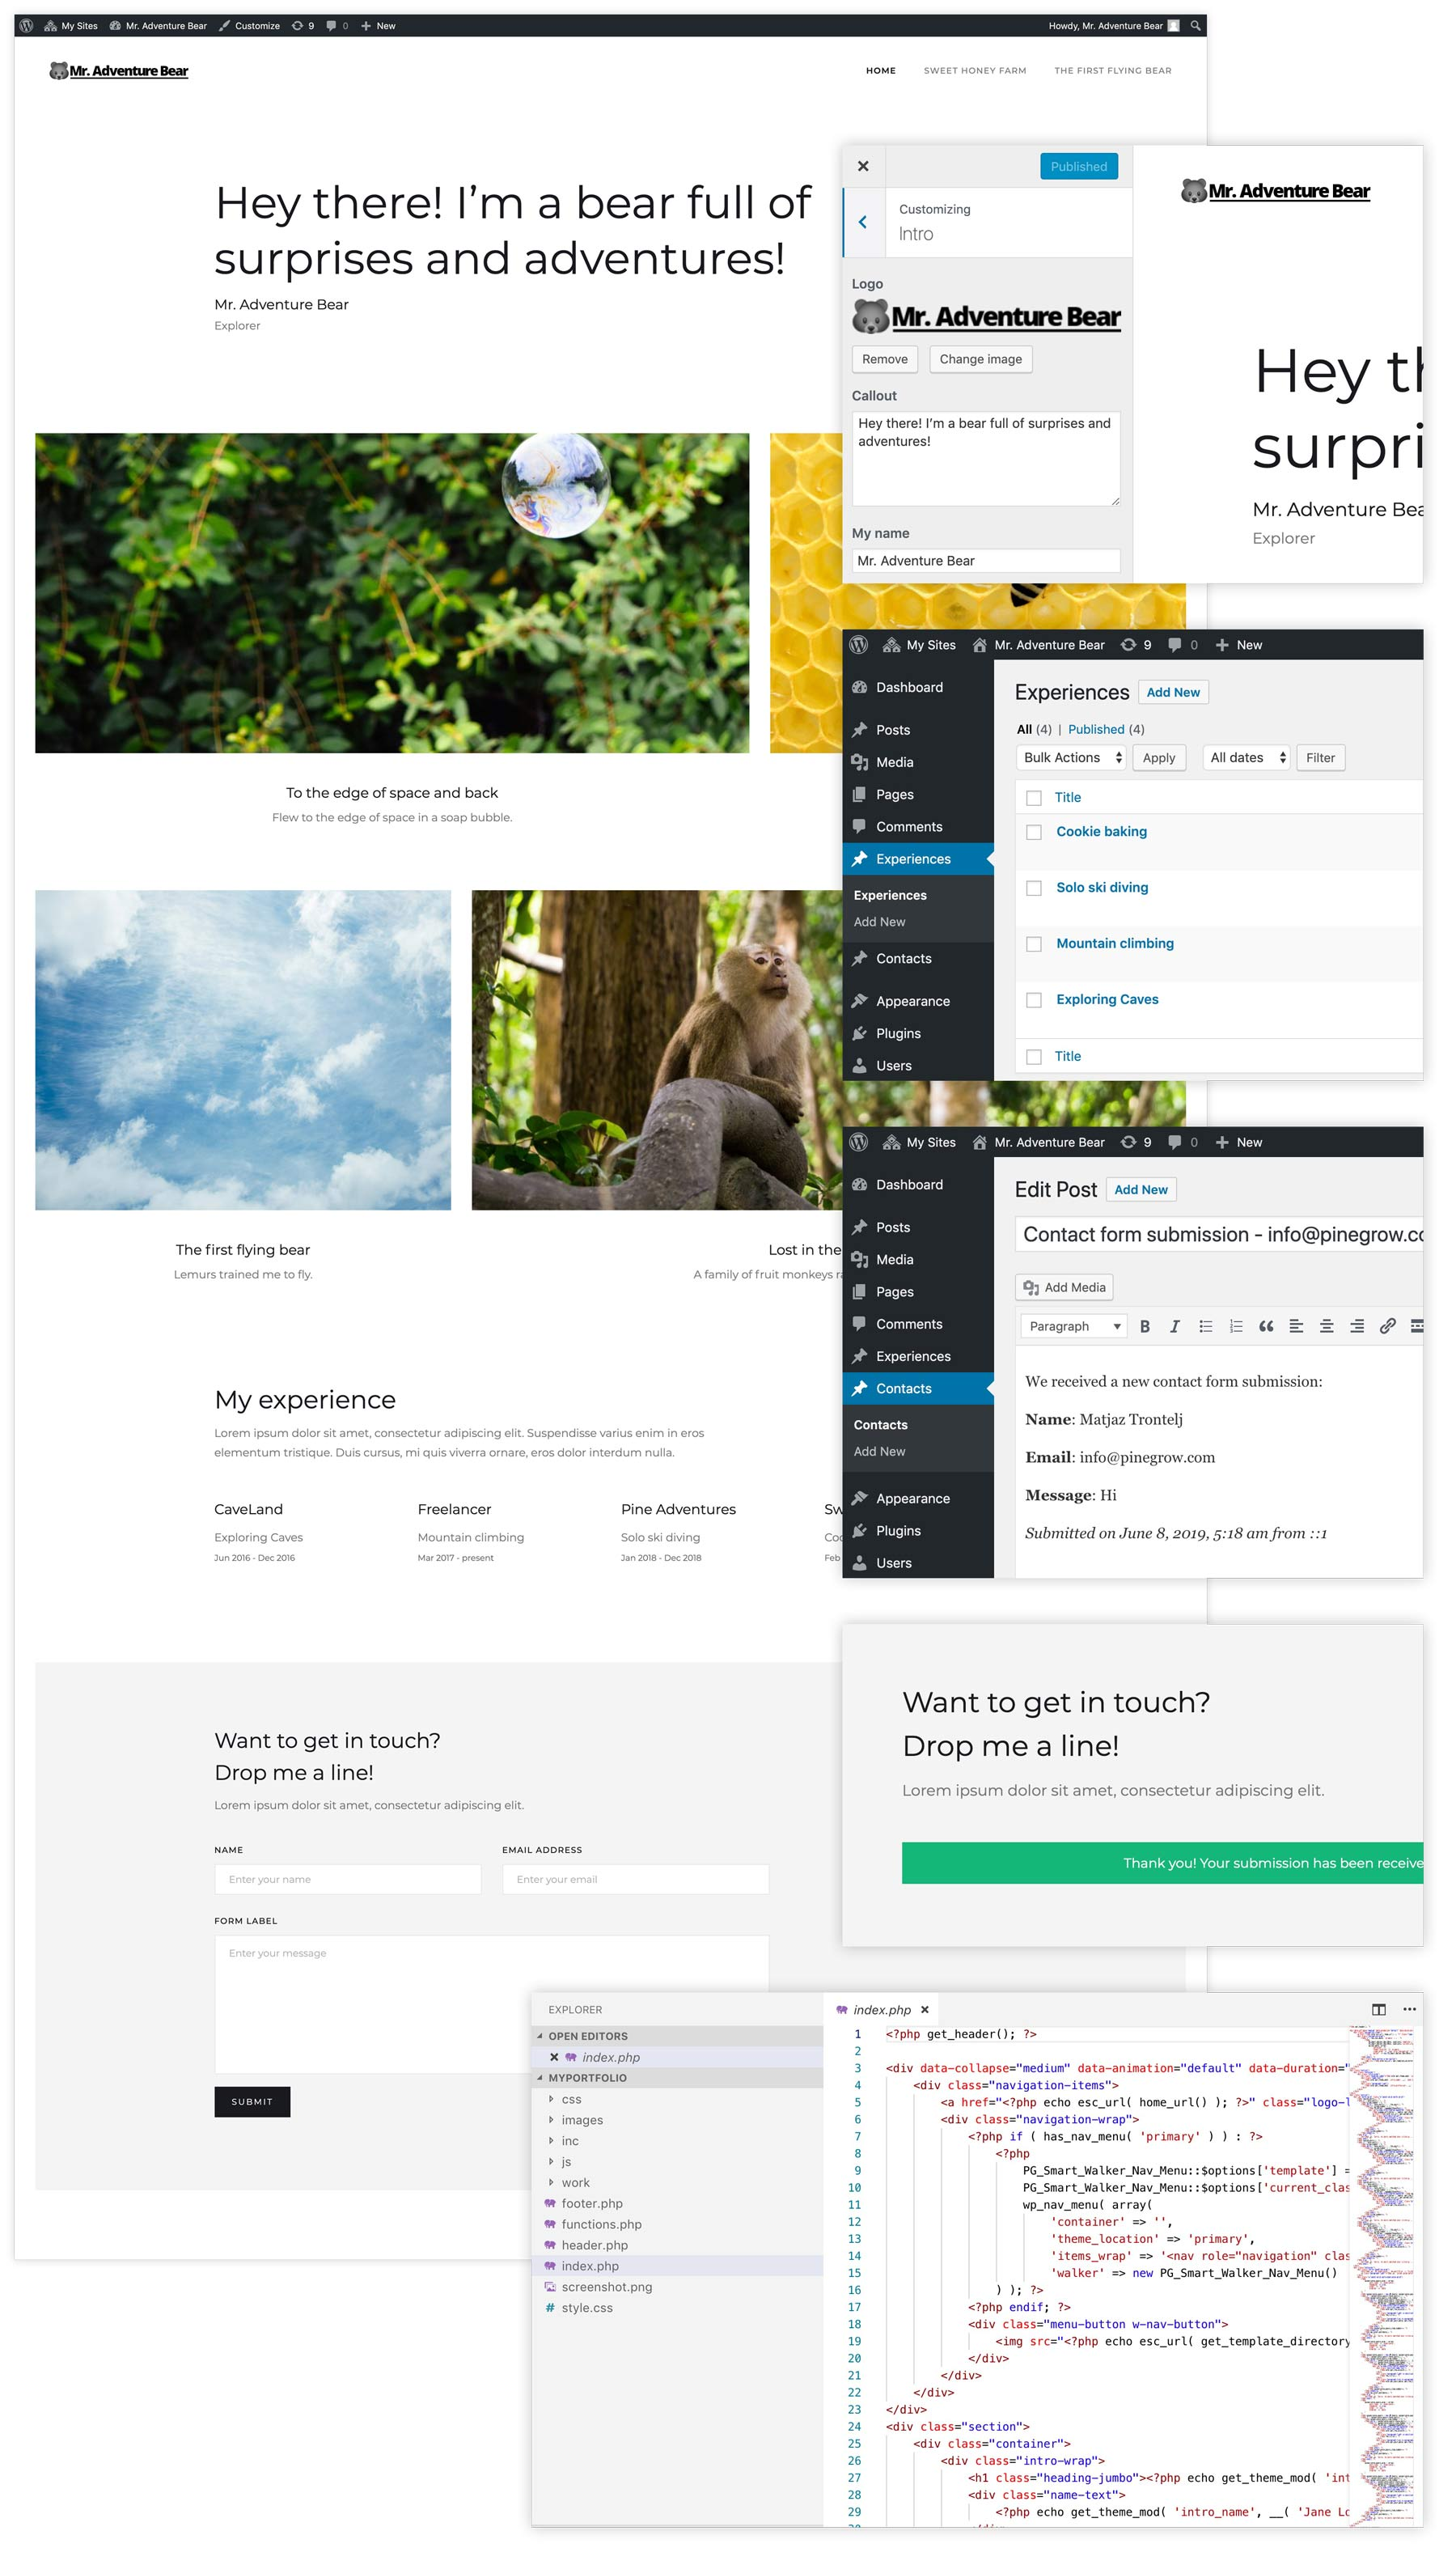 A converted WordPress site with dynamic areas, post collections, menus and functioning forms.